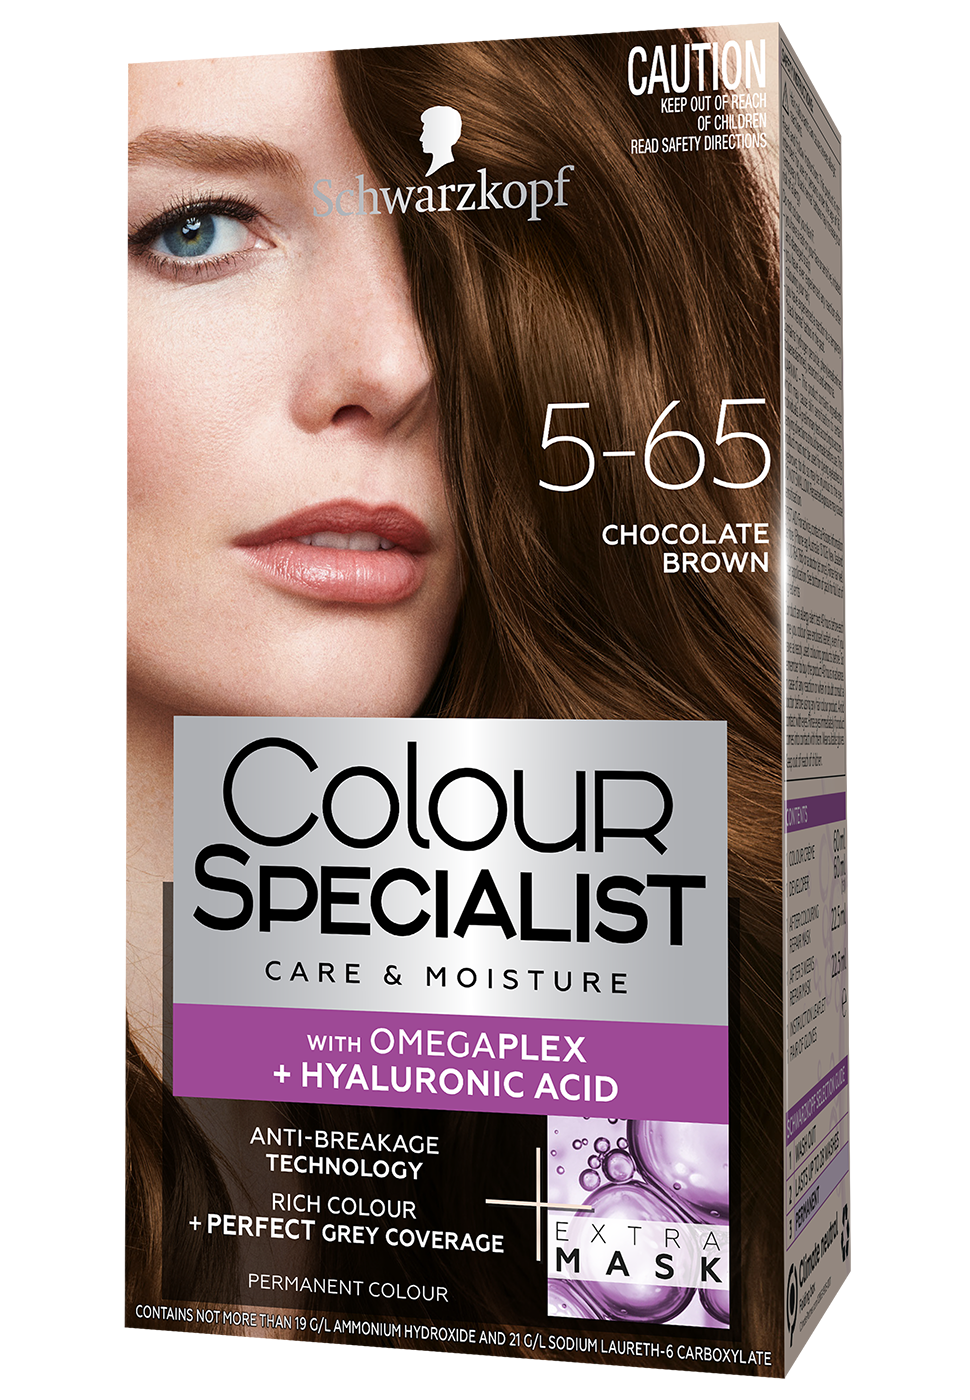 Colour Specialist 5-65 Chocolate Brown 3D LF_970x1400